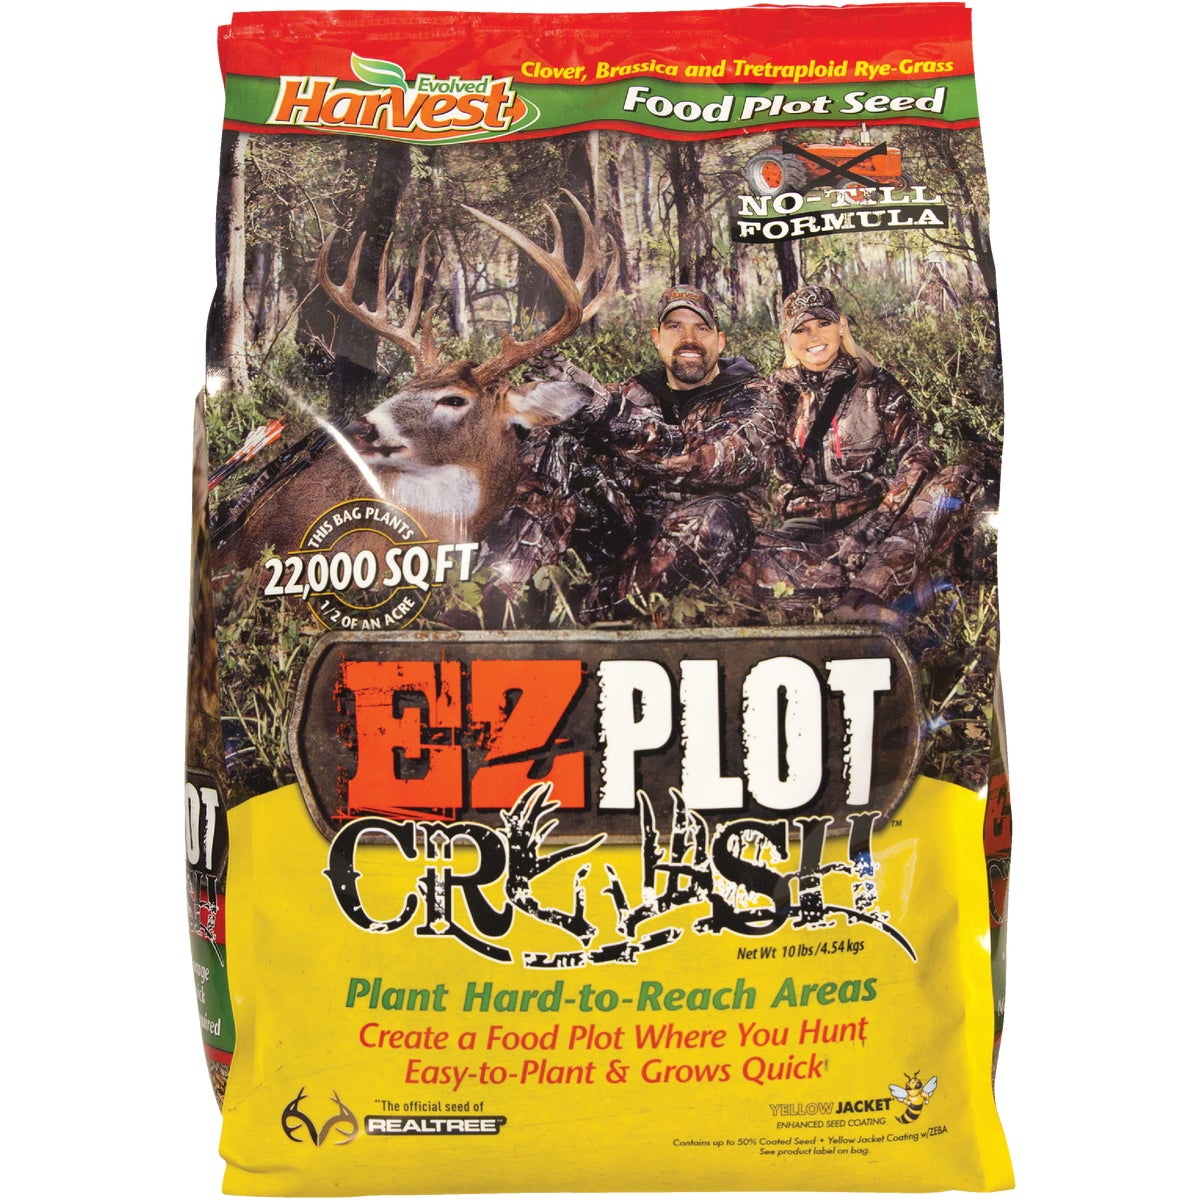 EZ PLOT CRUSH - 70125 by Evolved Habitats